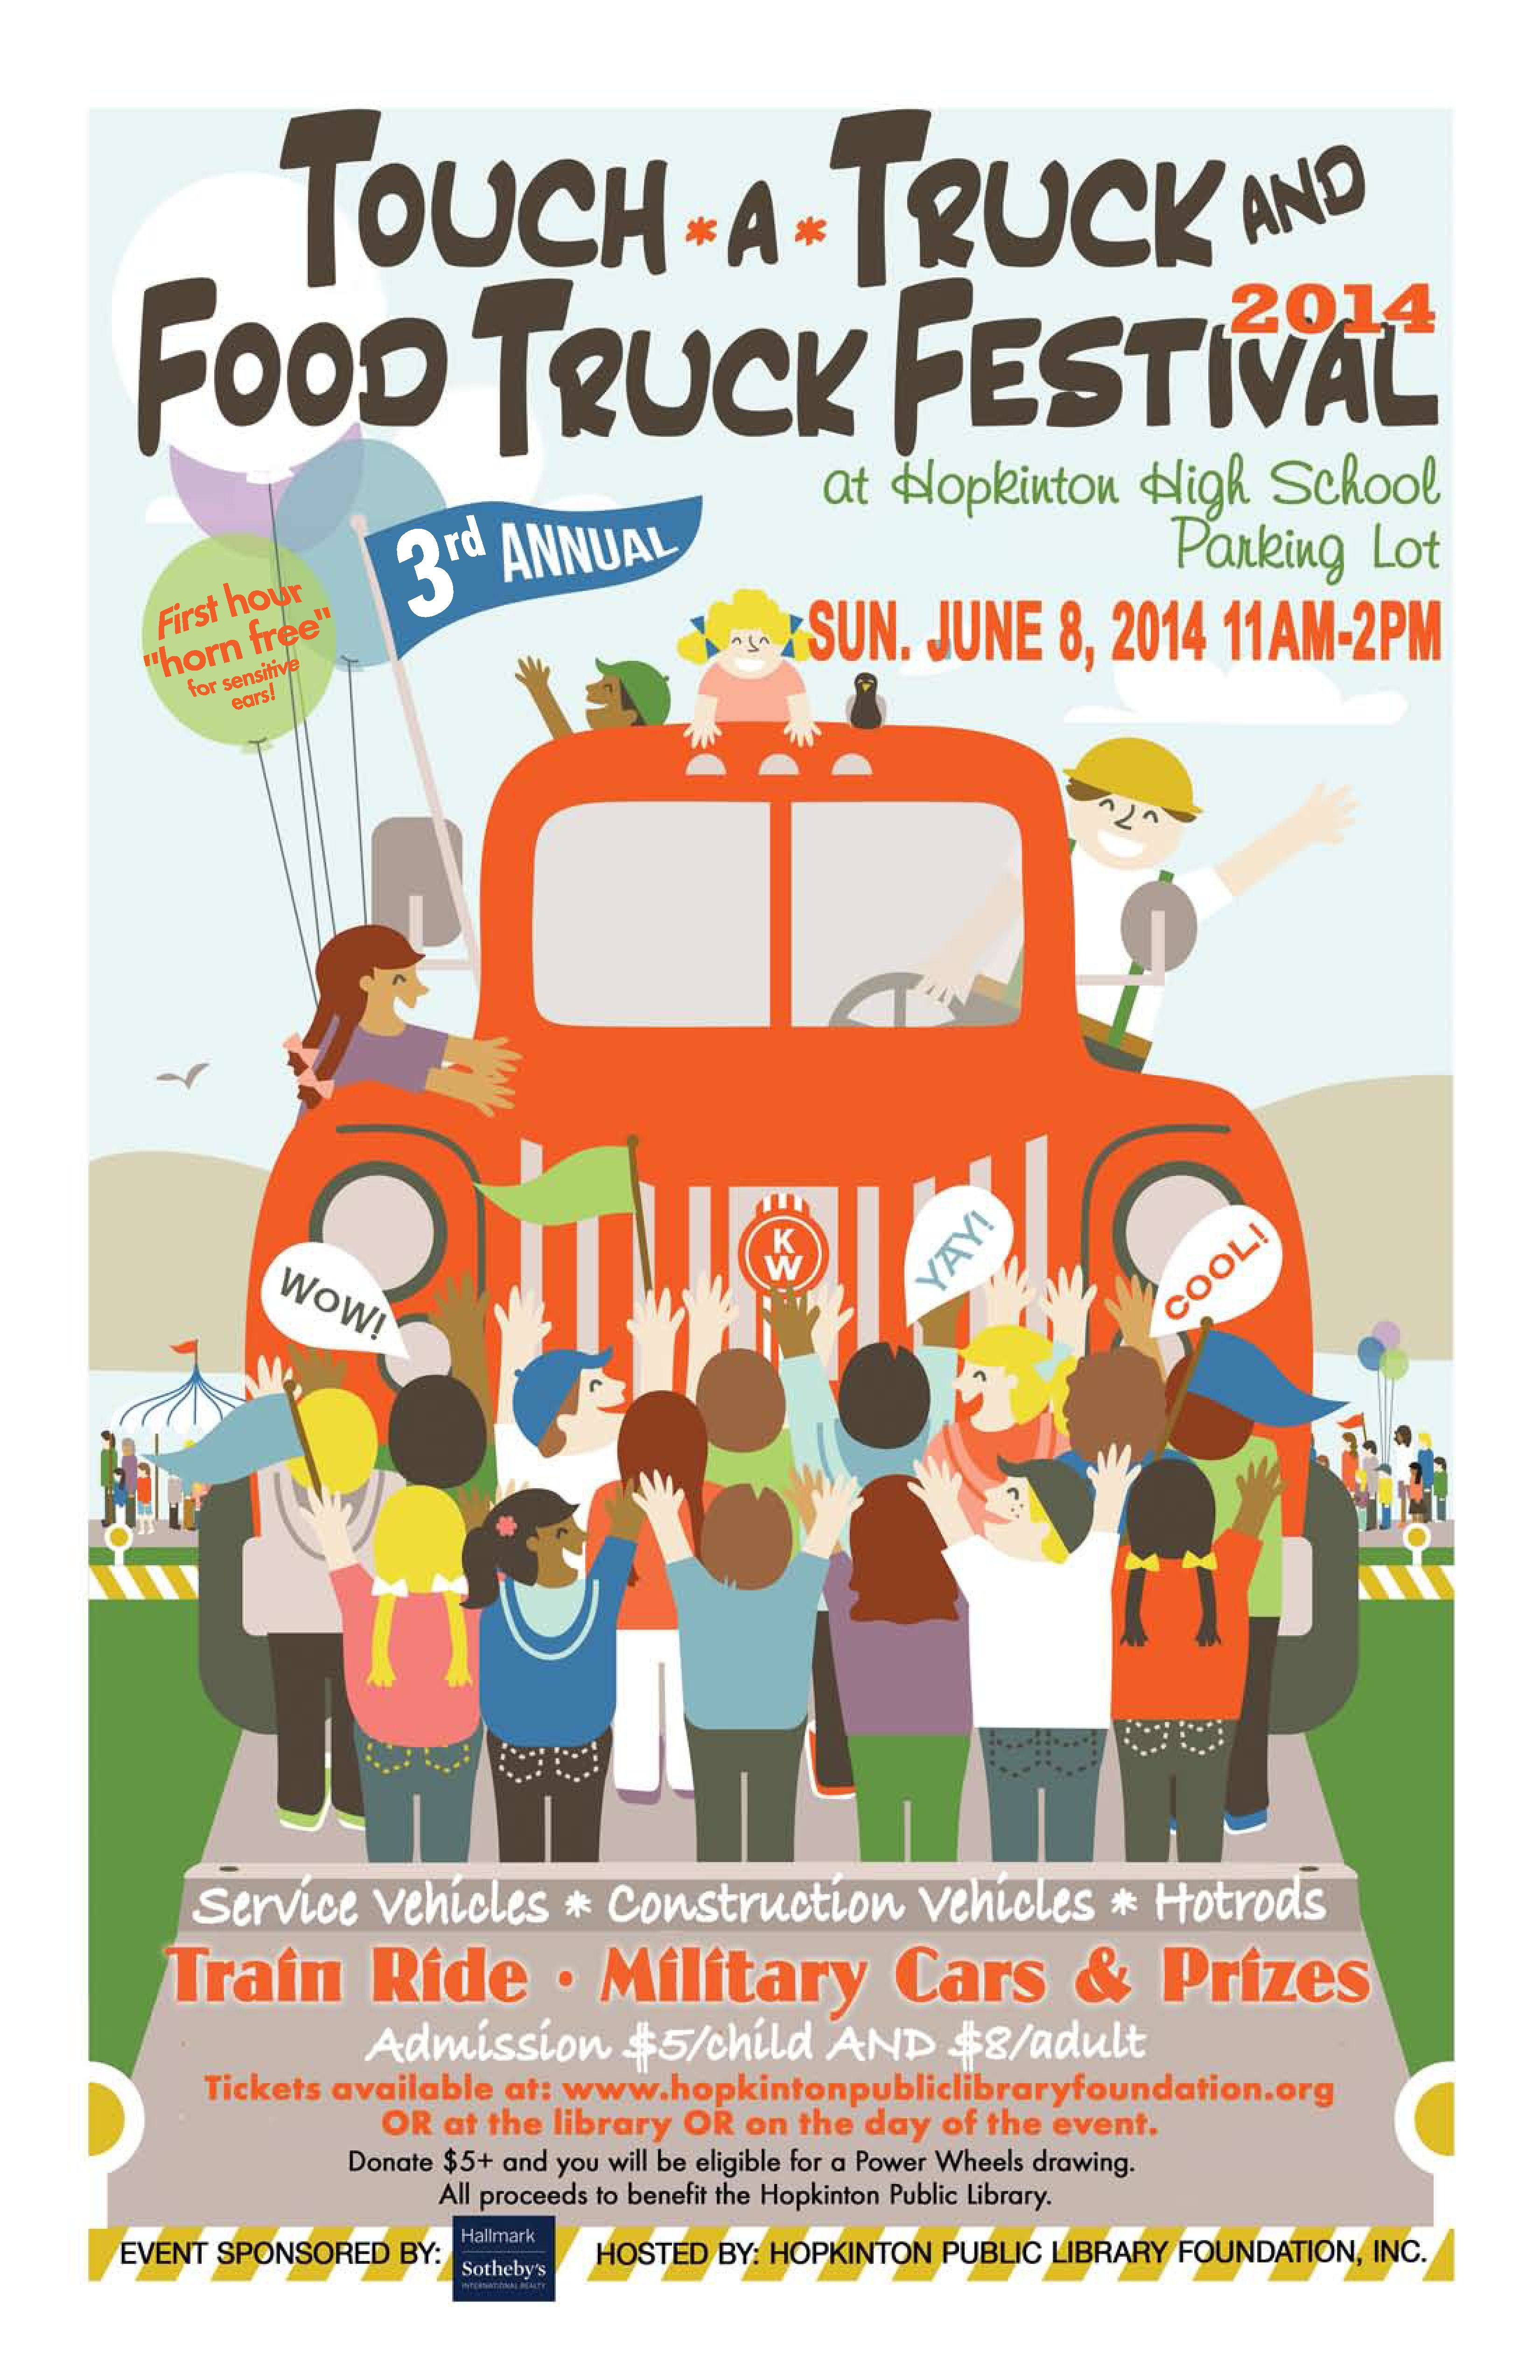 touch-a-truck and food truck festival   fundraising   pinterest